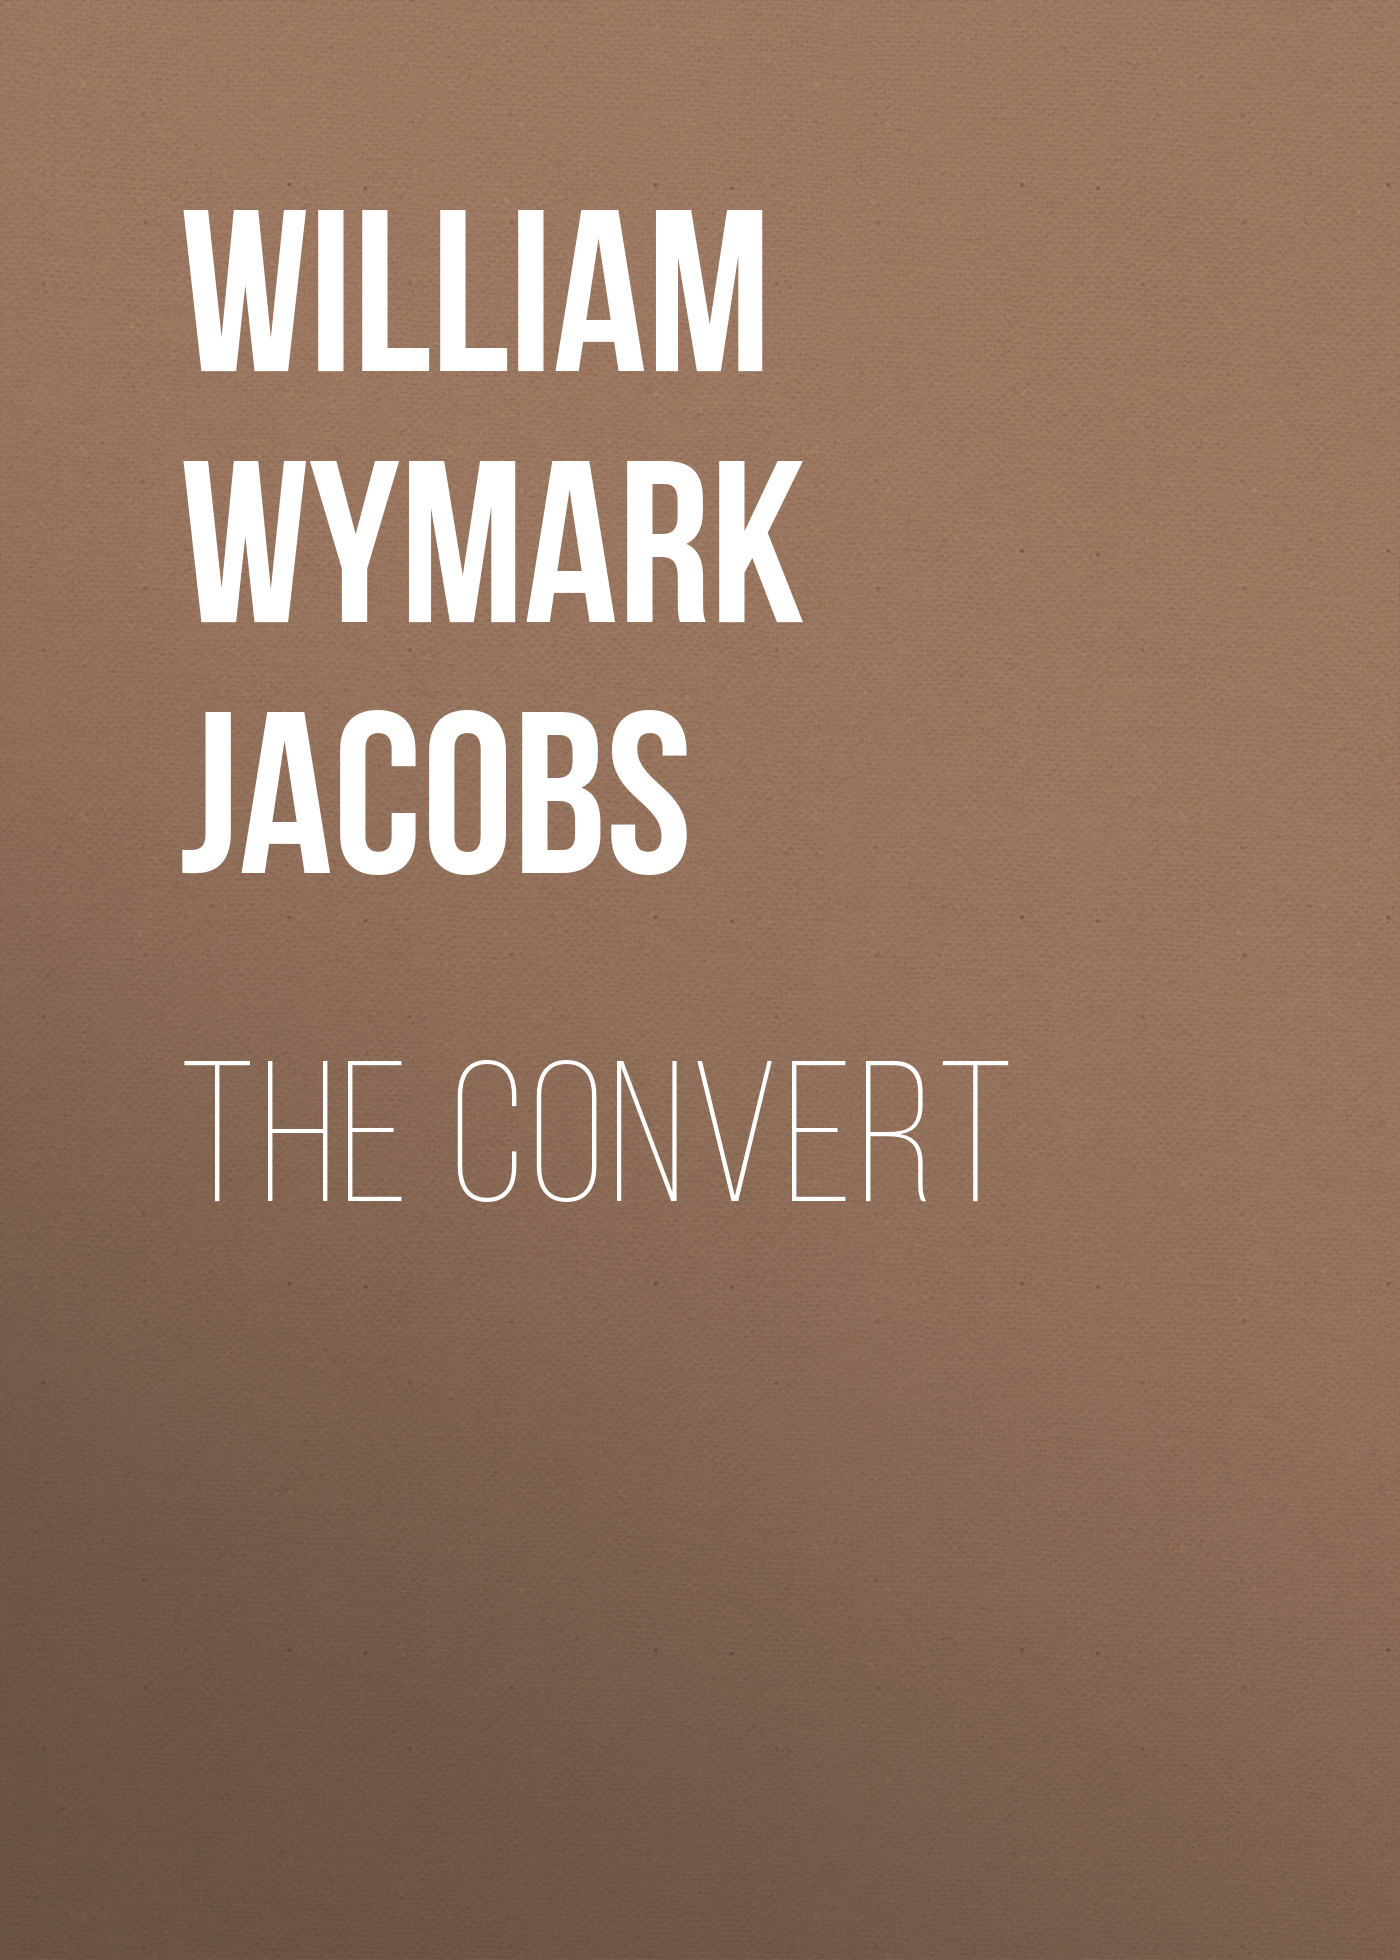 William Wymark Jacobs The Convert william wymark jacobs the convert